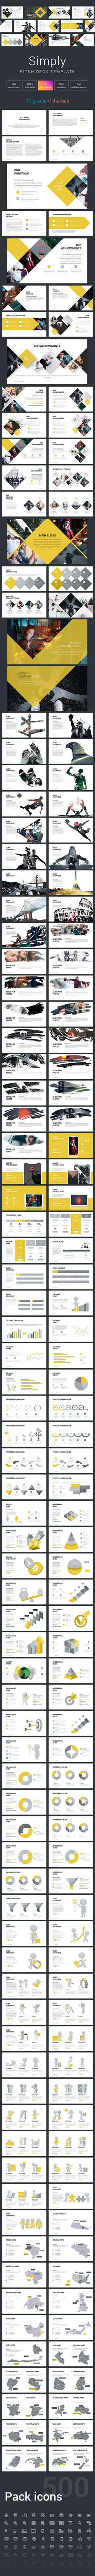 Simply Pitch Deck Powerpoint Template - Pitch Deck PowerPoint Templates